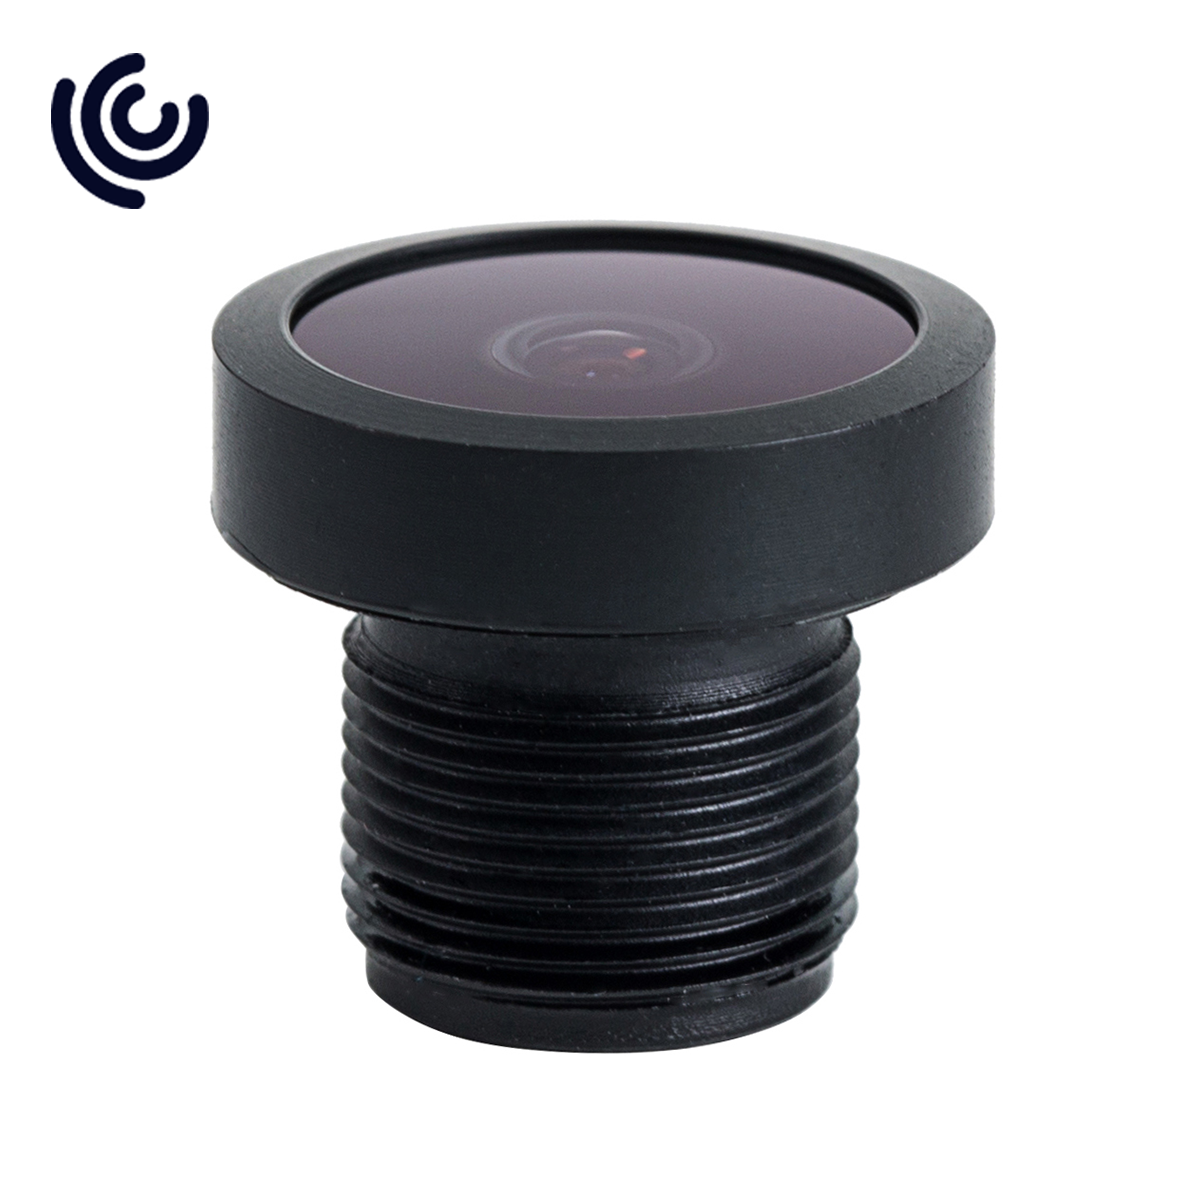 """1/4"""" 2mm Board Lens M8 with DFOV 170 degree"""